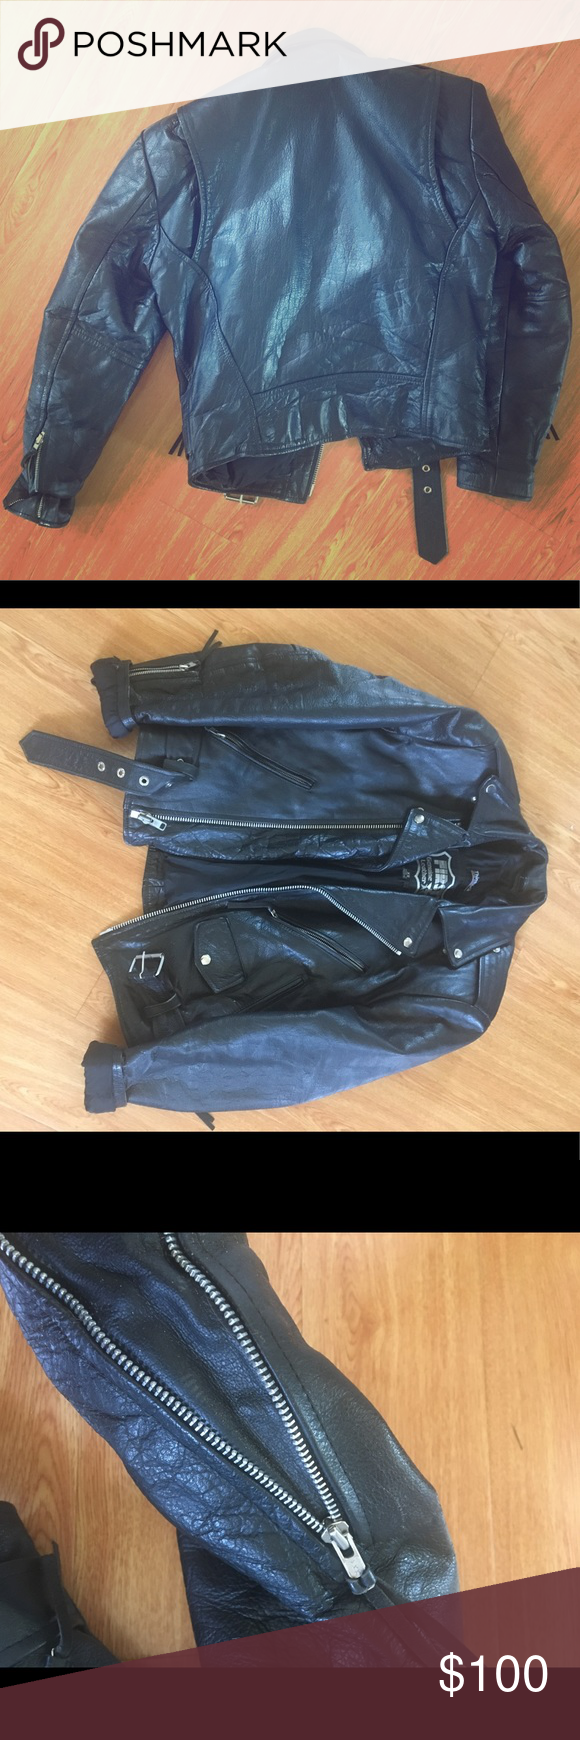 """Xs Men's leather jacket Thinsulate lined, polyester padded, 100% leather outside. XS Men's leather motorcycle jacket. Excellent condition. Shoulder to shoulder seam: 19"""", across chest armpit to armpit: 17"""", sleeves: 2', shoulder armhole circumference: 9.5"""", waist: 17"""" Jackets & Coats"""